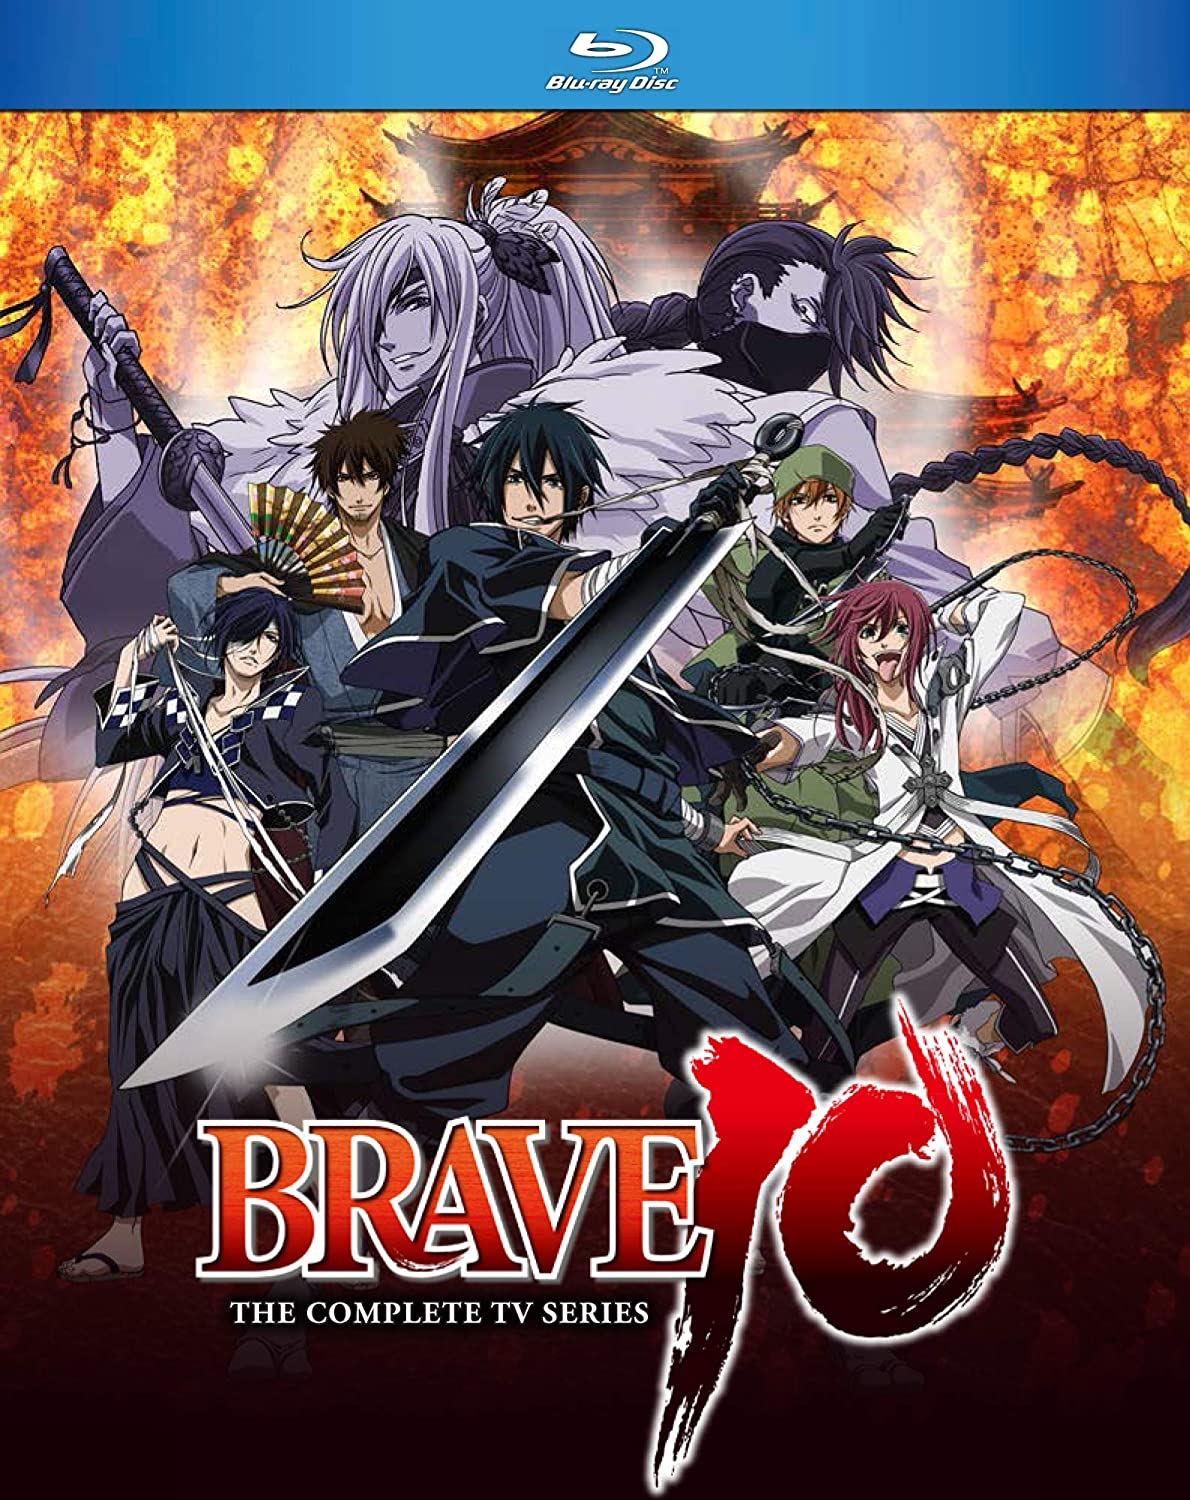 Brave 10 Blu-ray (Sub Only)